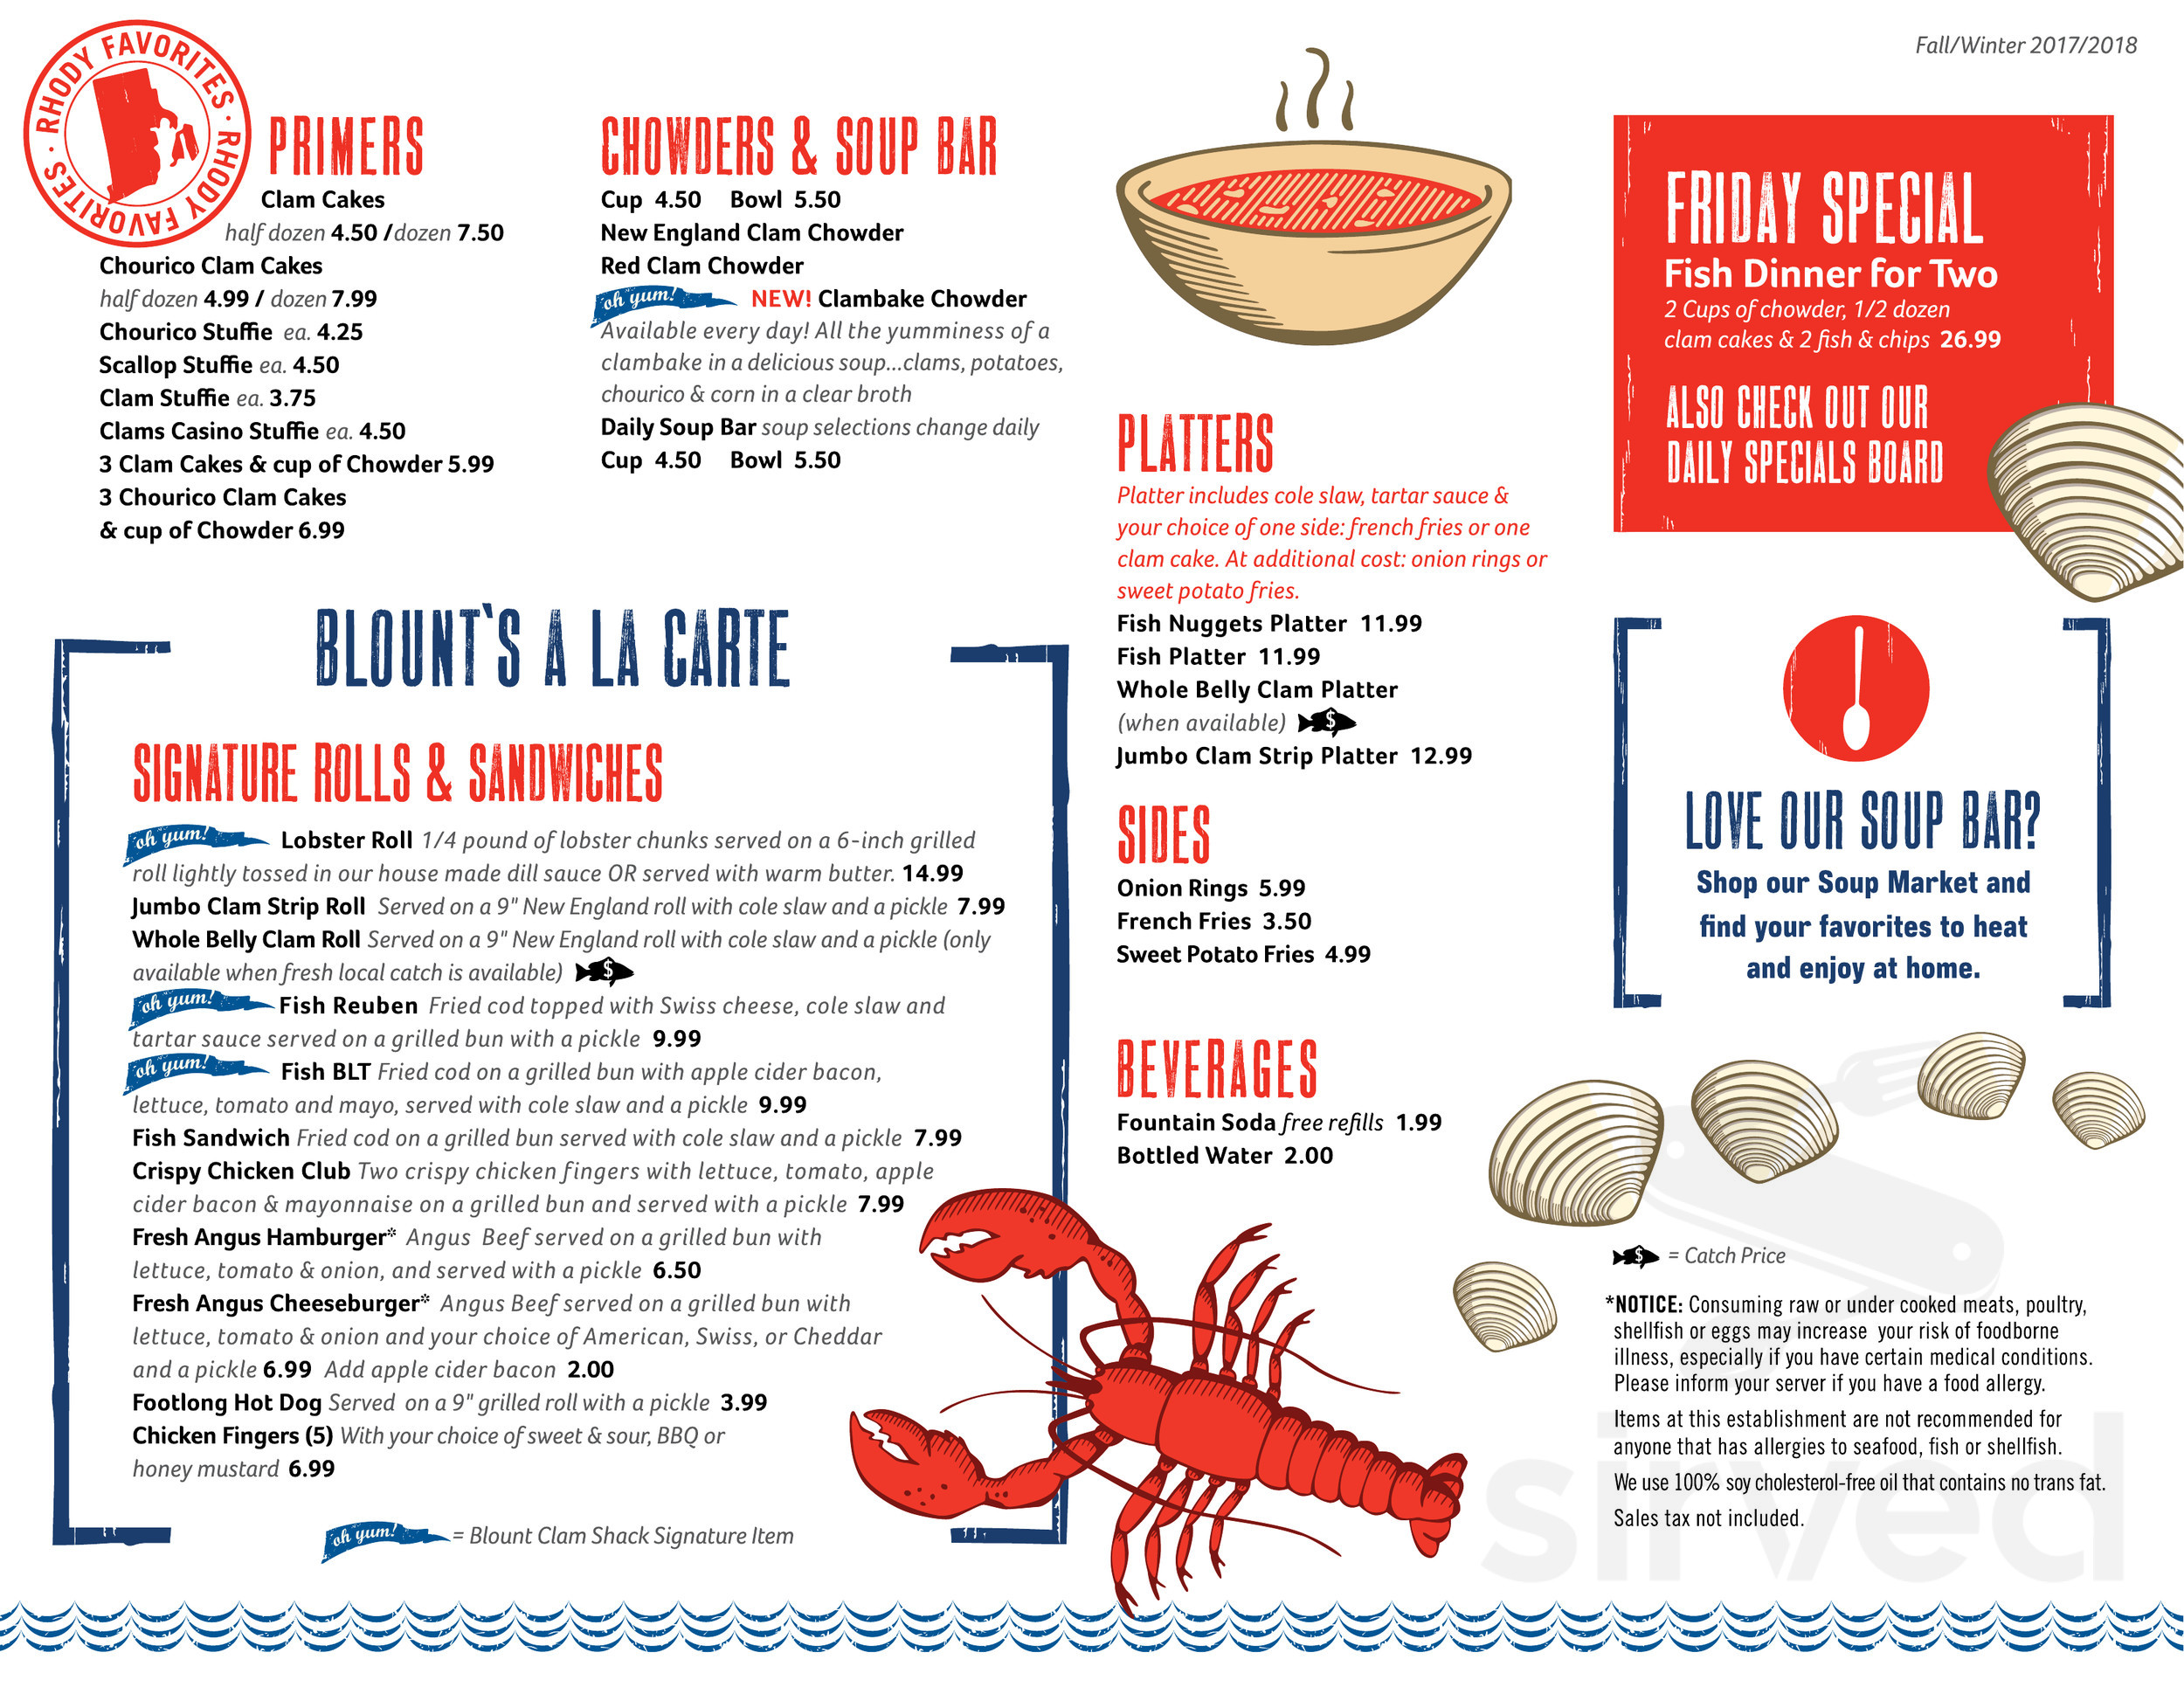 Blount Clam Shack and Company Store menu in Fall River, Massachusetts